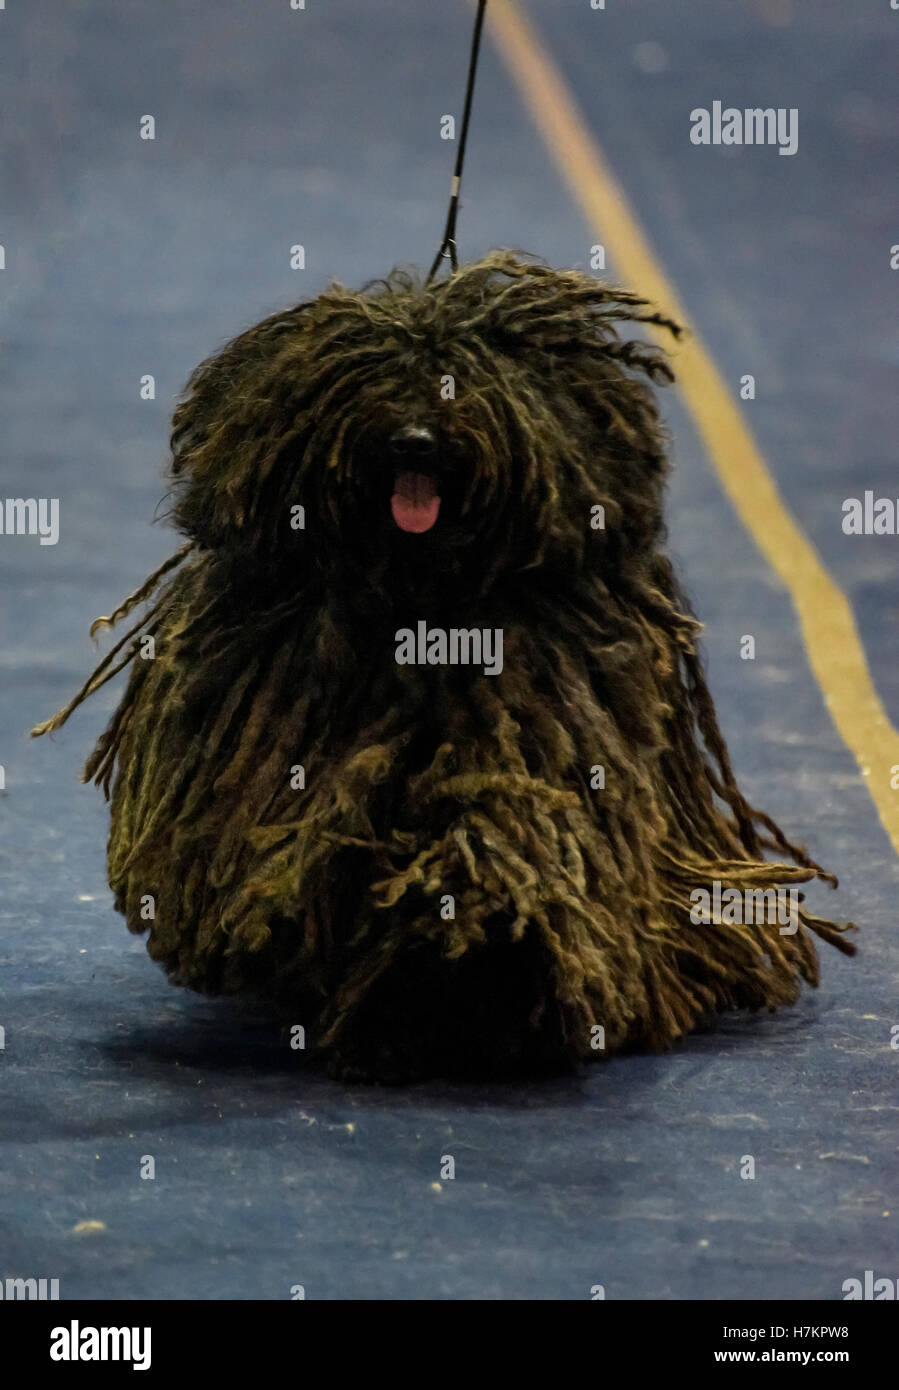 The Puli is a small-medium breed of Hungarian herding and livestock guarding dog known for its long, corded coat. Stock Photo